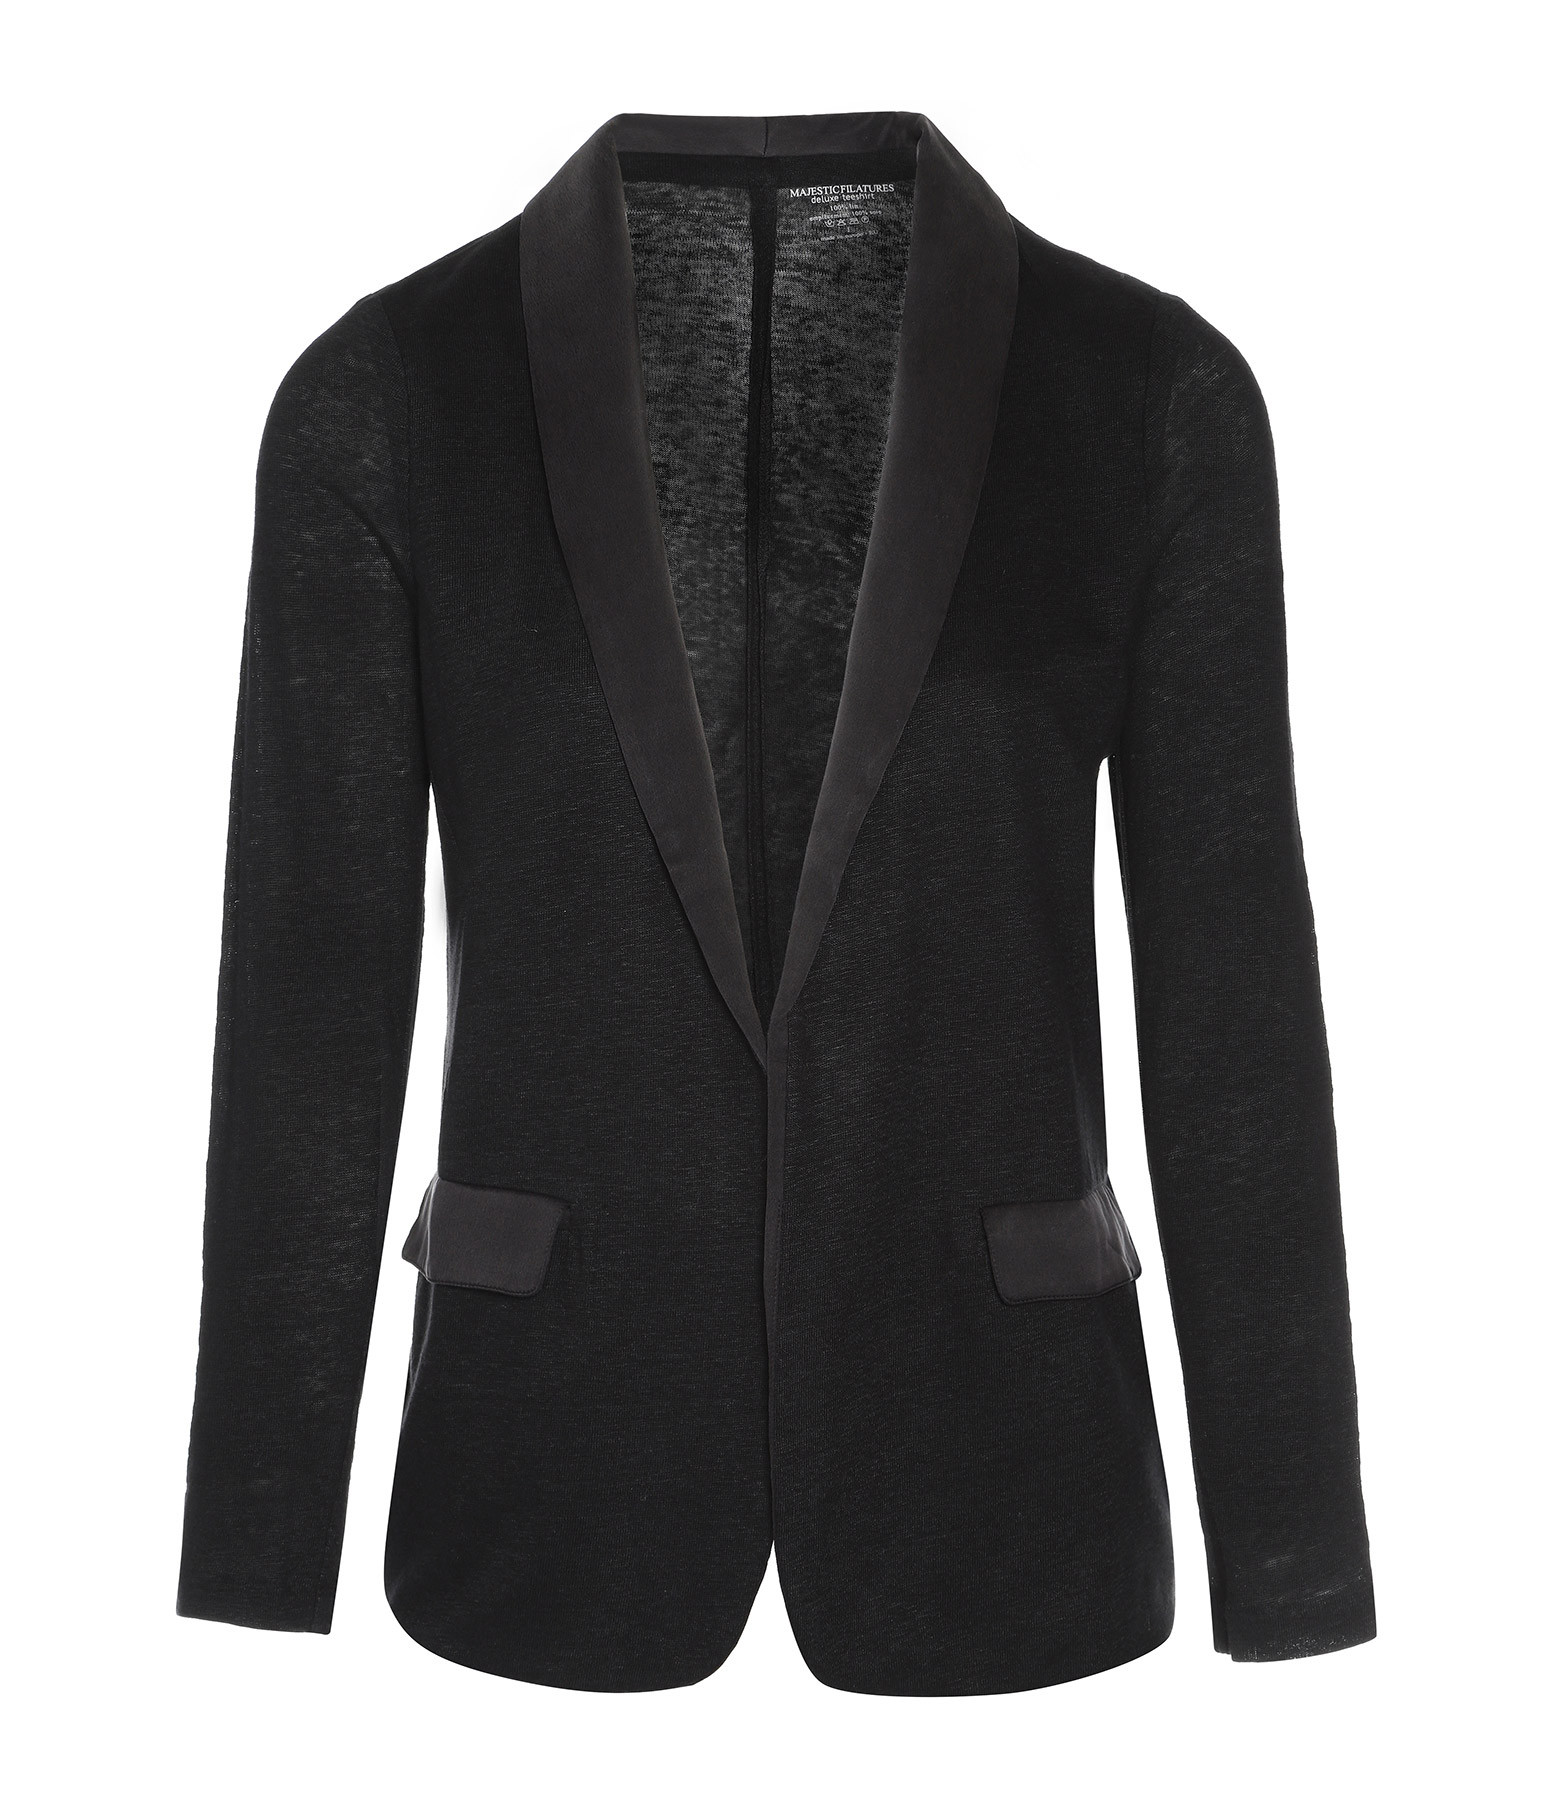 MAJESTIC FILATURES - Blazer Smoking Soie Noir